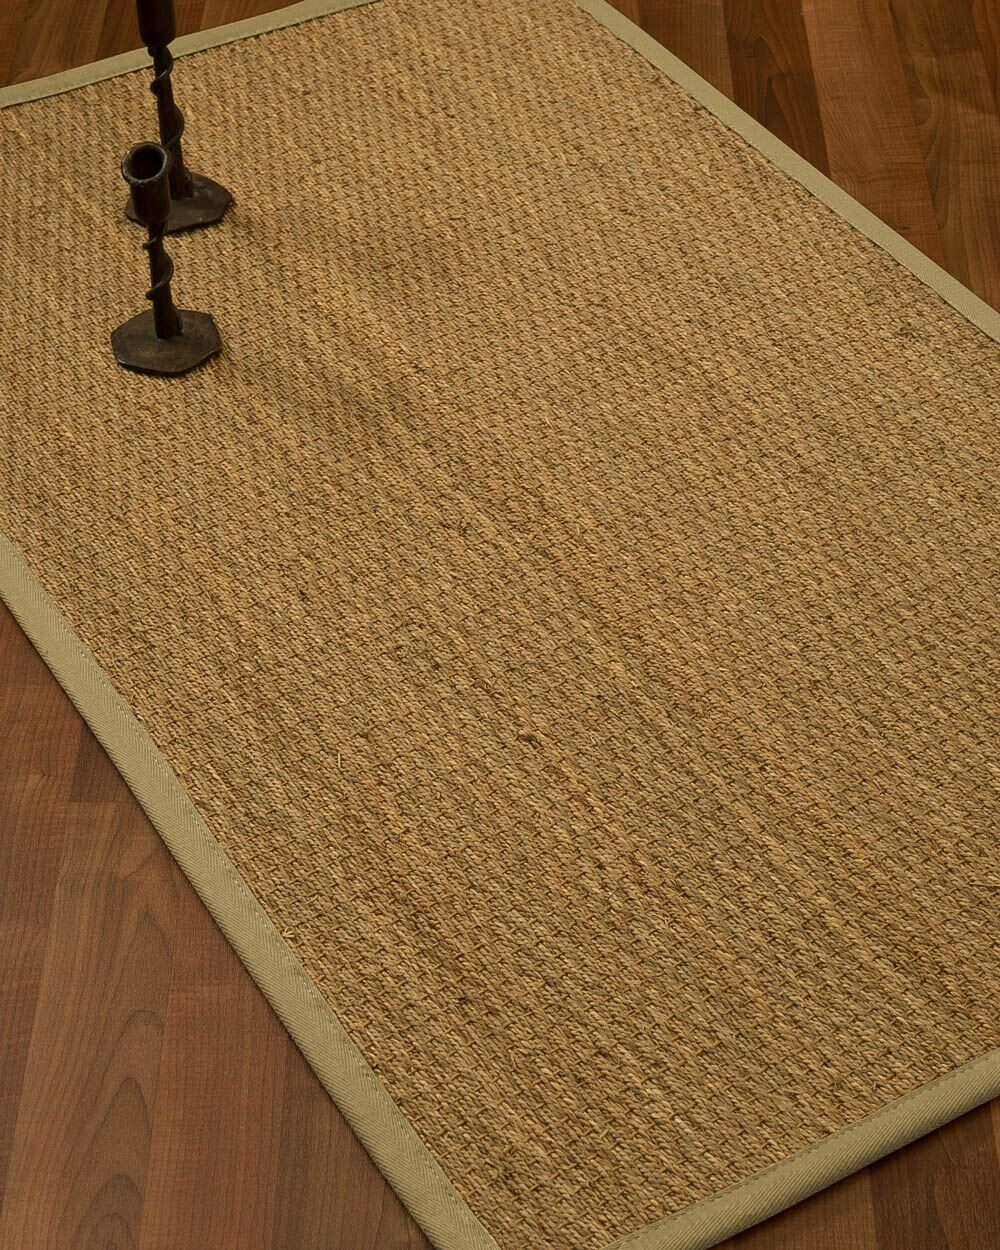 Vanmatre Border Hand-Woven Beige/Sand Area Rug Rug Size: Rectangle 8' x 10', Rug Pad Included: Yes